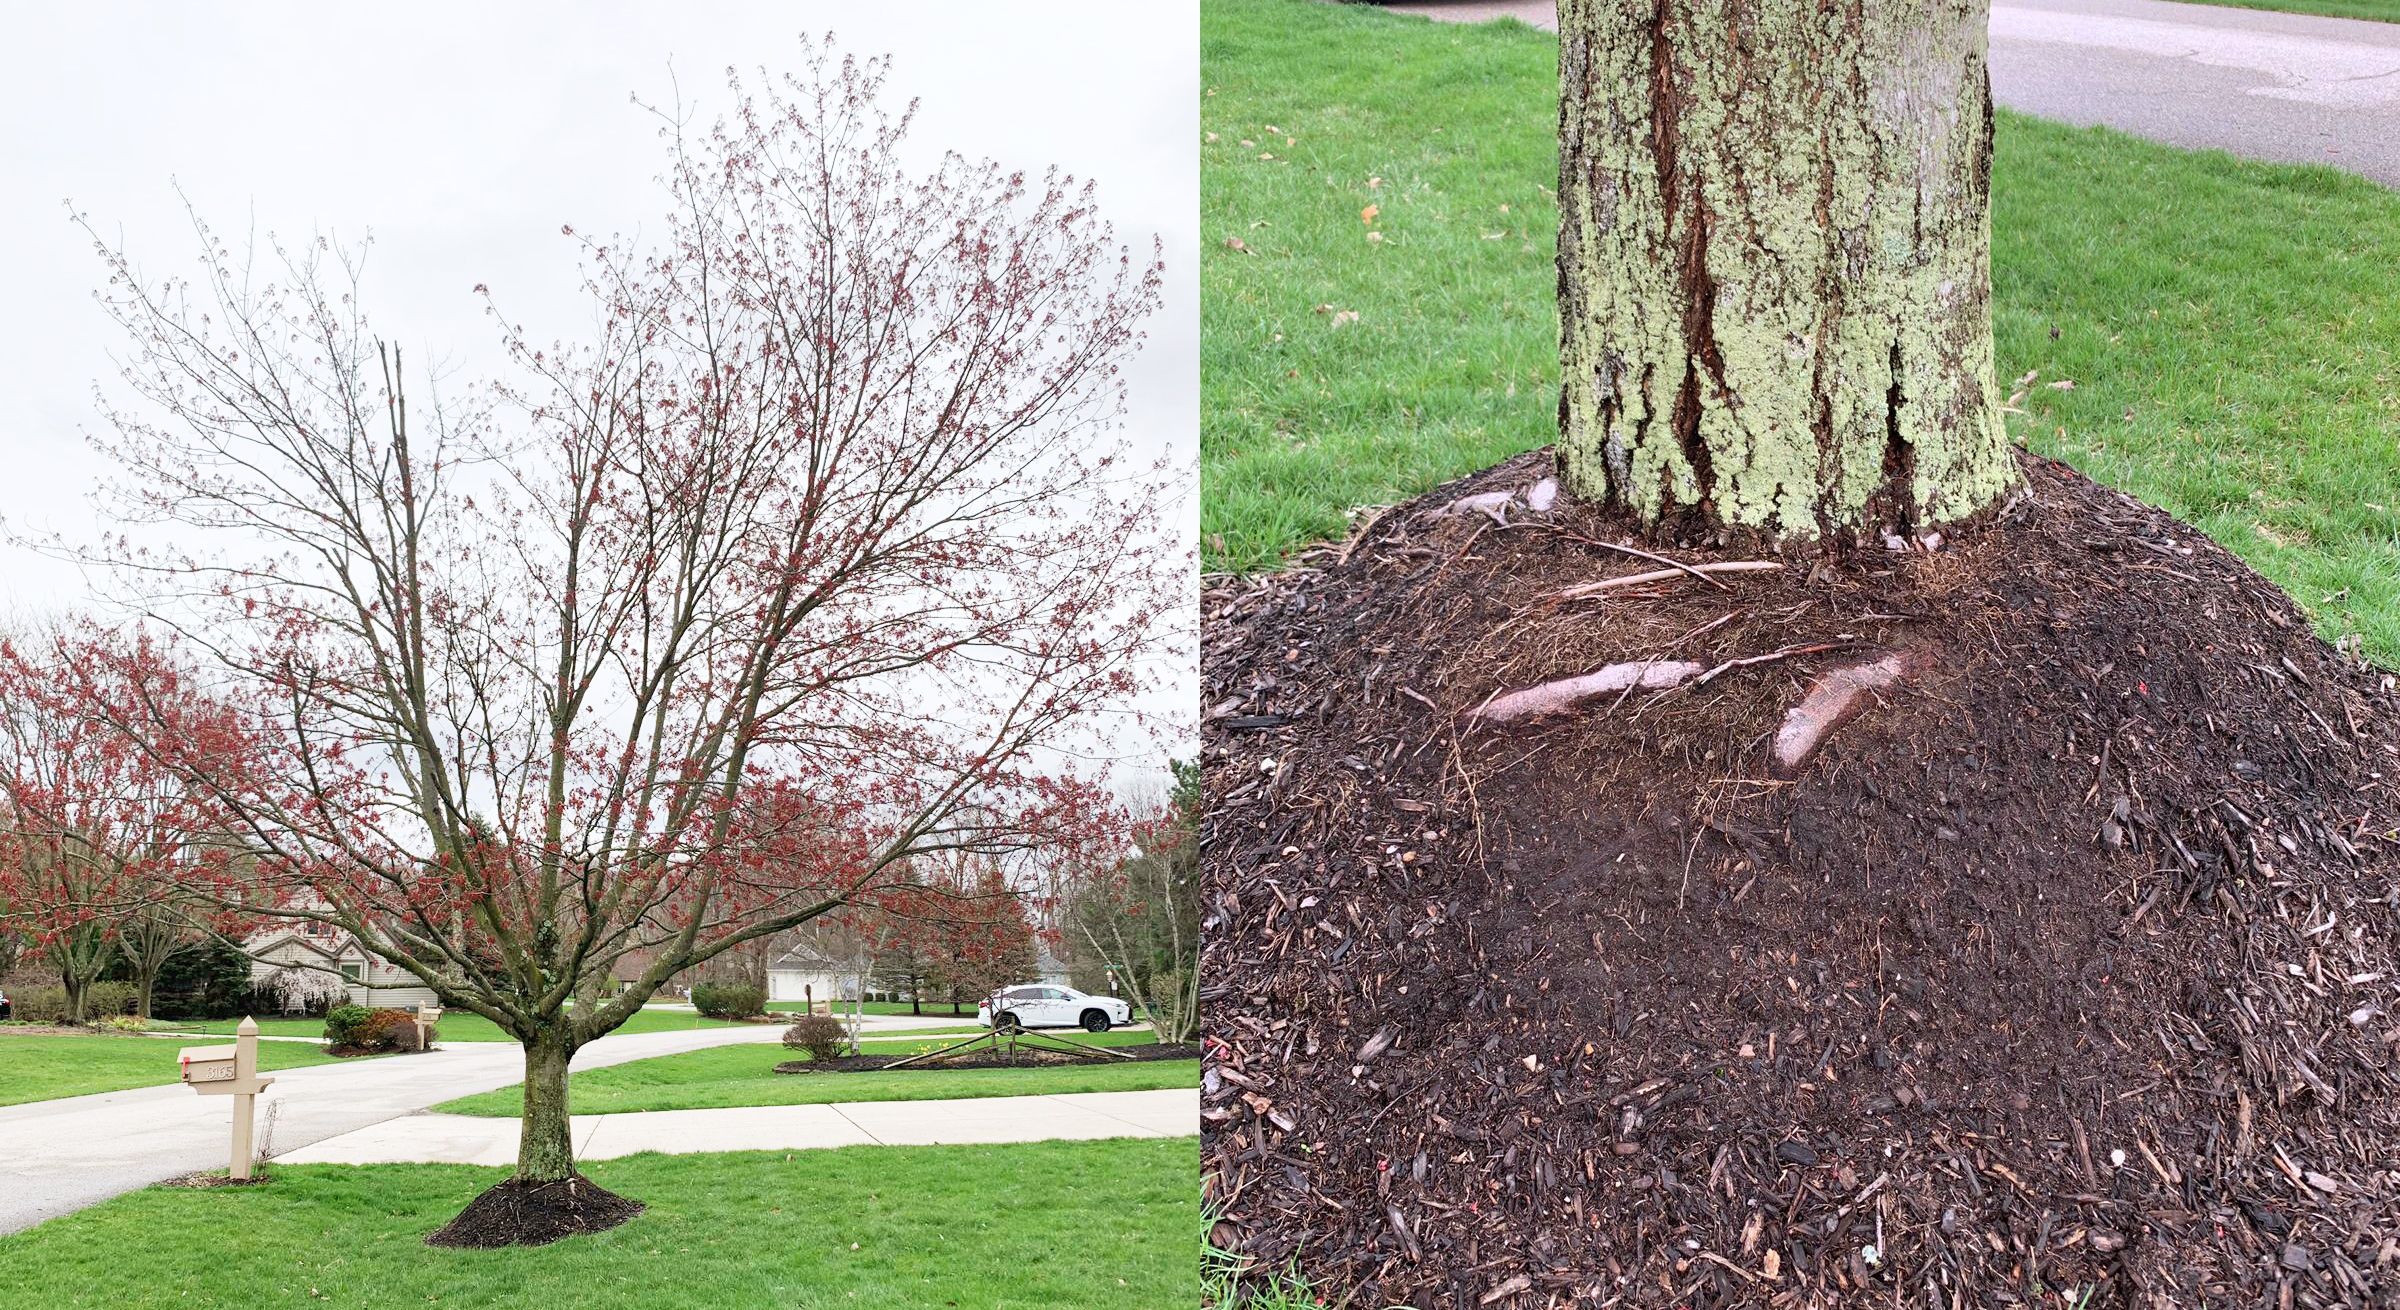 The mulch mound around the base of this tree has caused new roots to grow around the root flare. These new roots are now girdling (choking) the tree causing it to decline (see lack of leaves/growth in the crown of the tree).